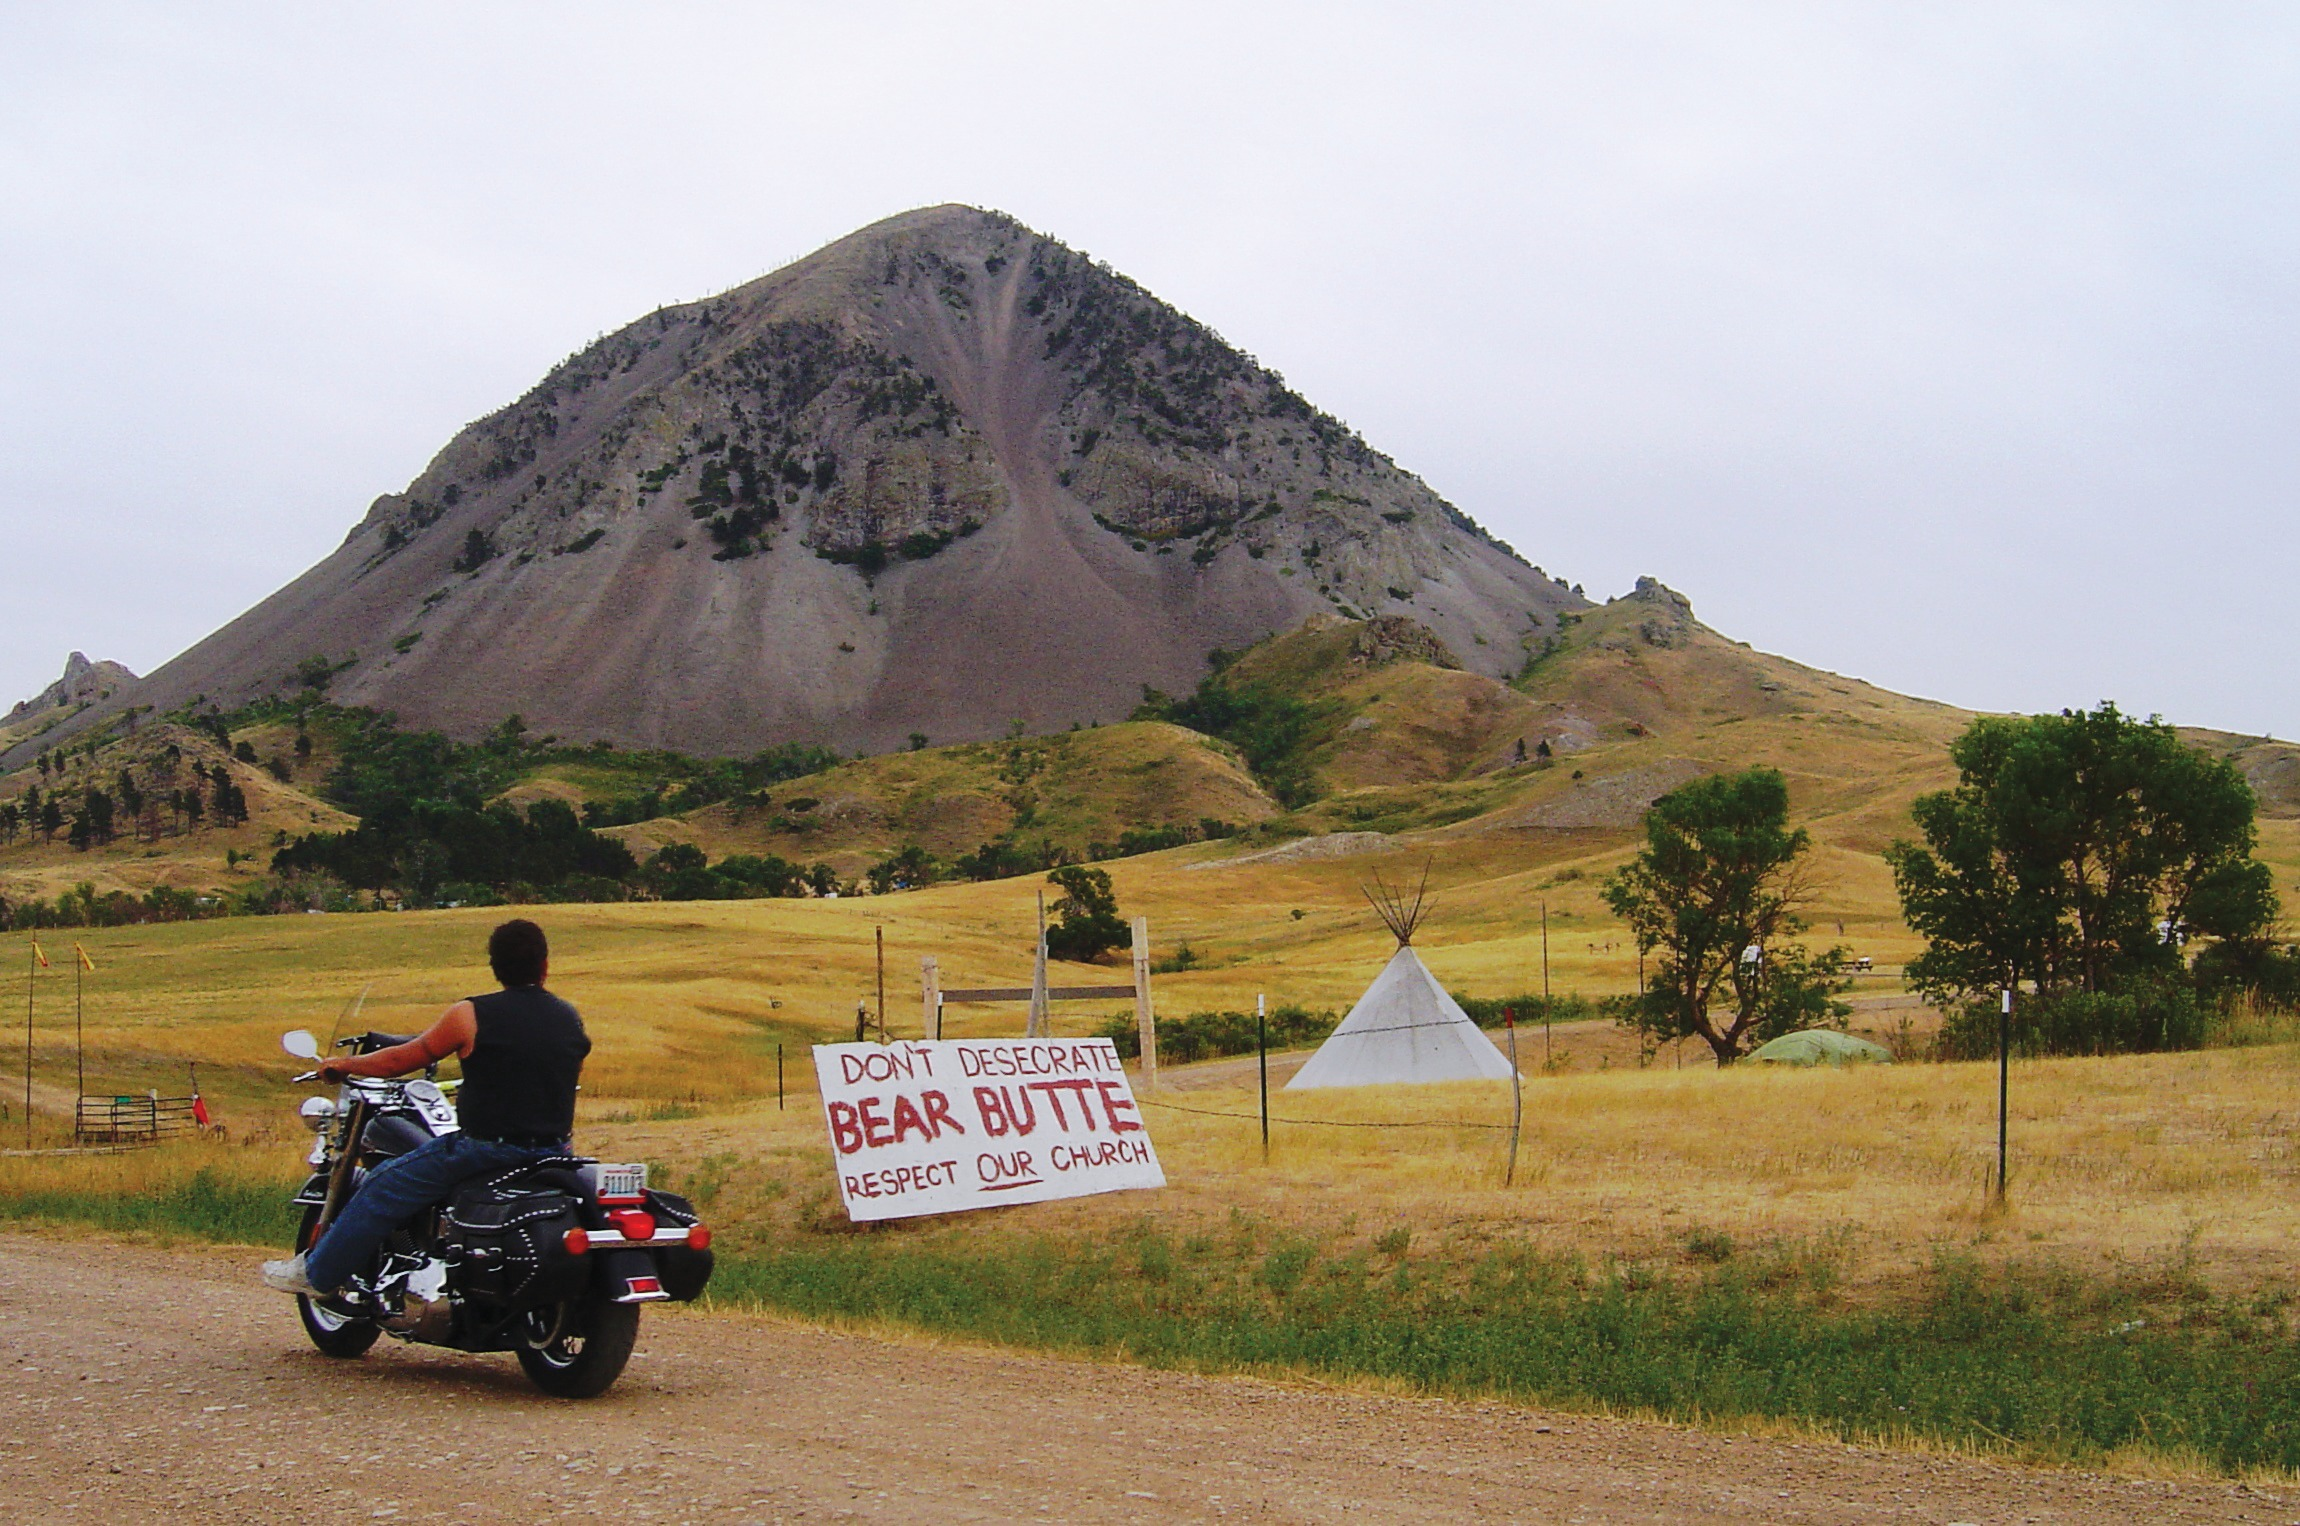 Native Sun News: BLM to update plan for land near Bear Butte